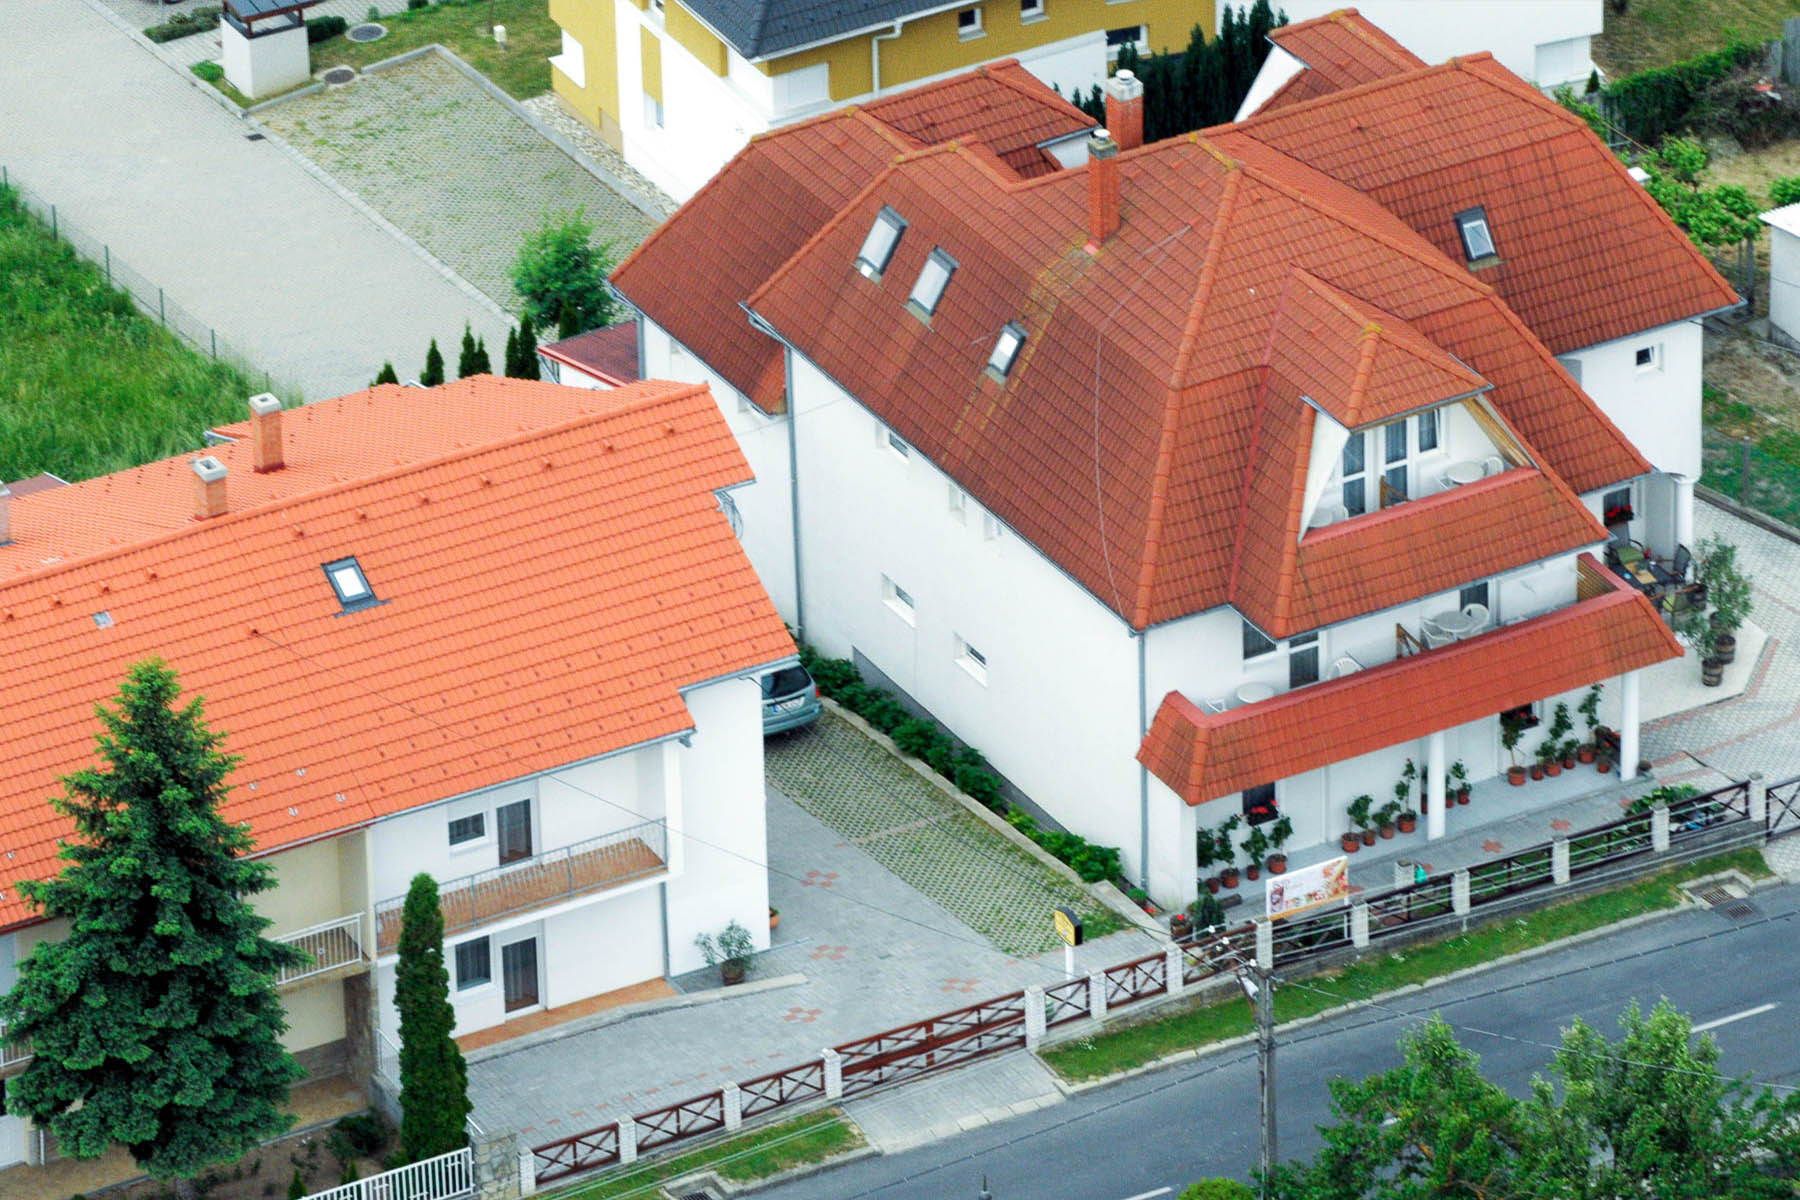 House from a bird's eye view